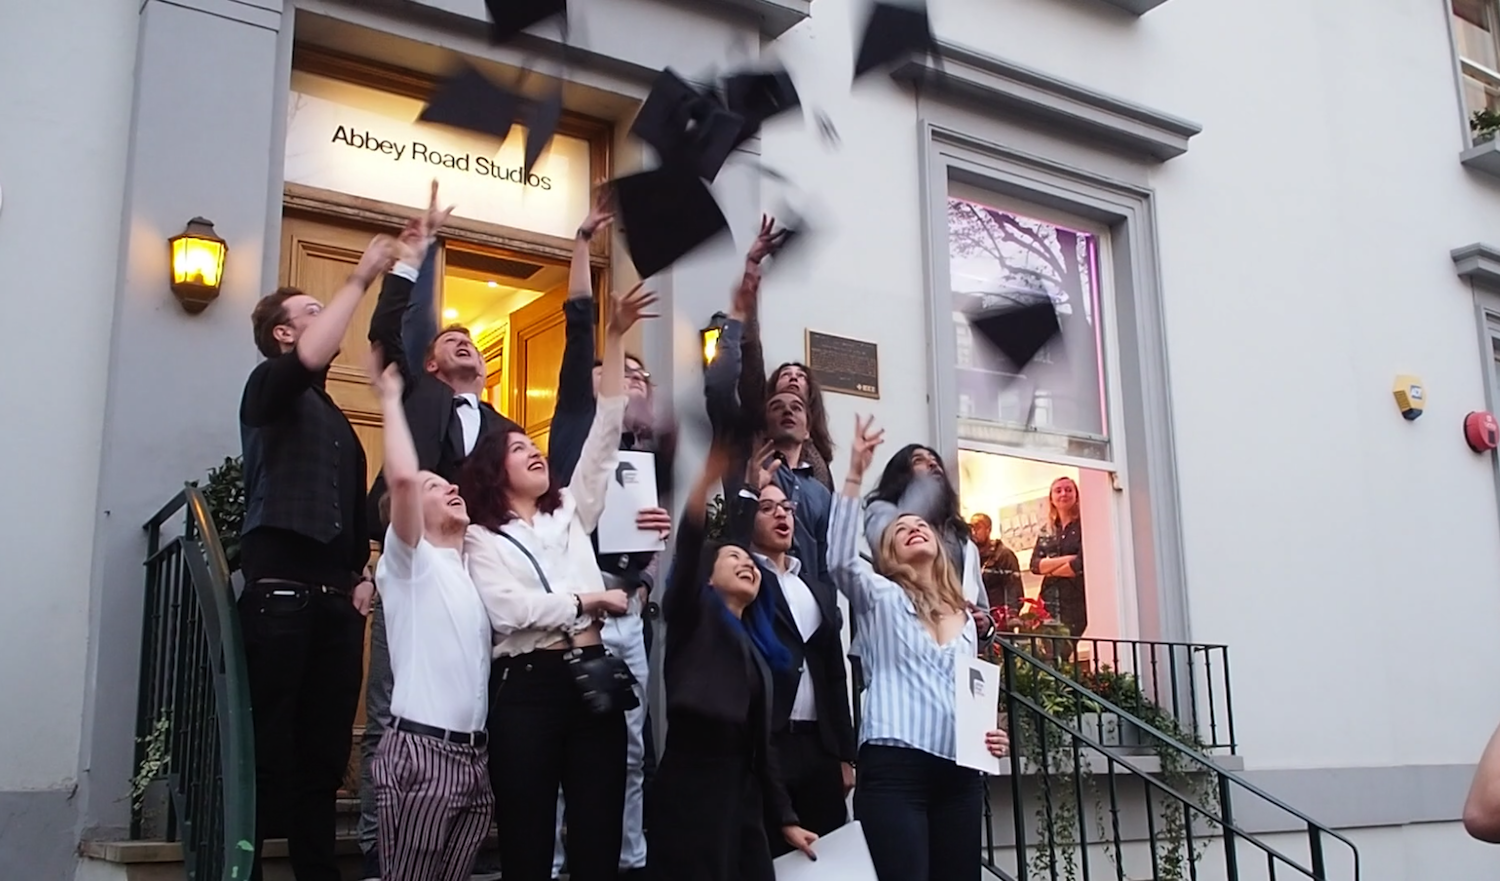 Abbey-Road-Studios-Institute-graduation-Amsterdam-The-Wong-Janice-London-music-producer-cellist-hats.png